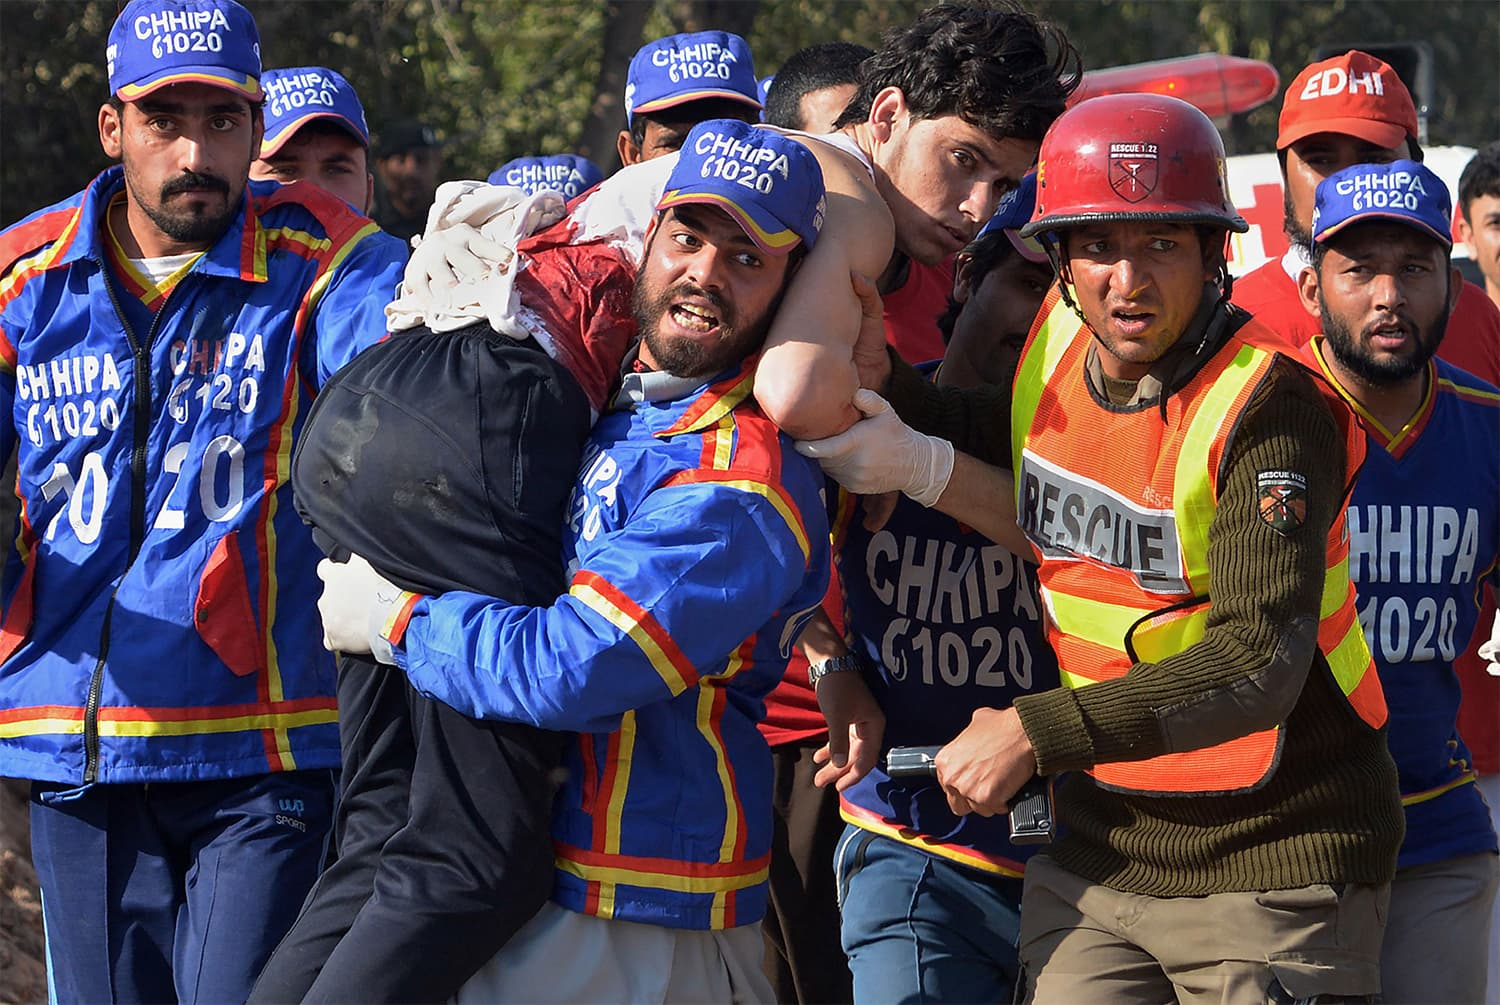 Rescue officials carry an injured student away from the ATI after the attack. ─ AFP